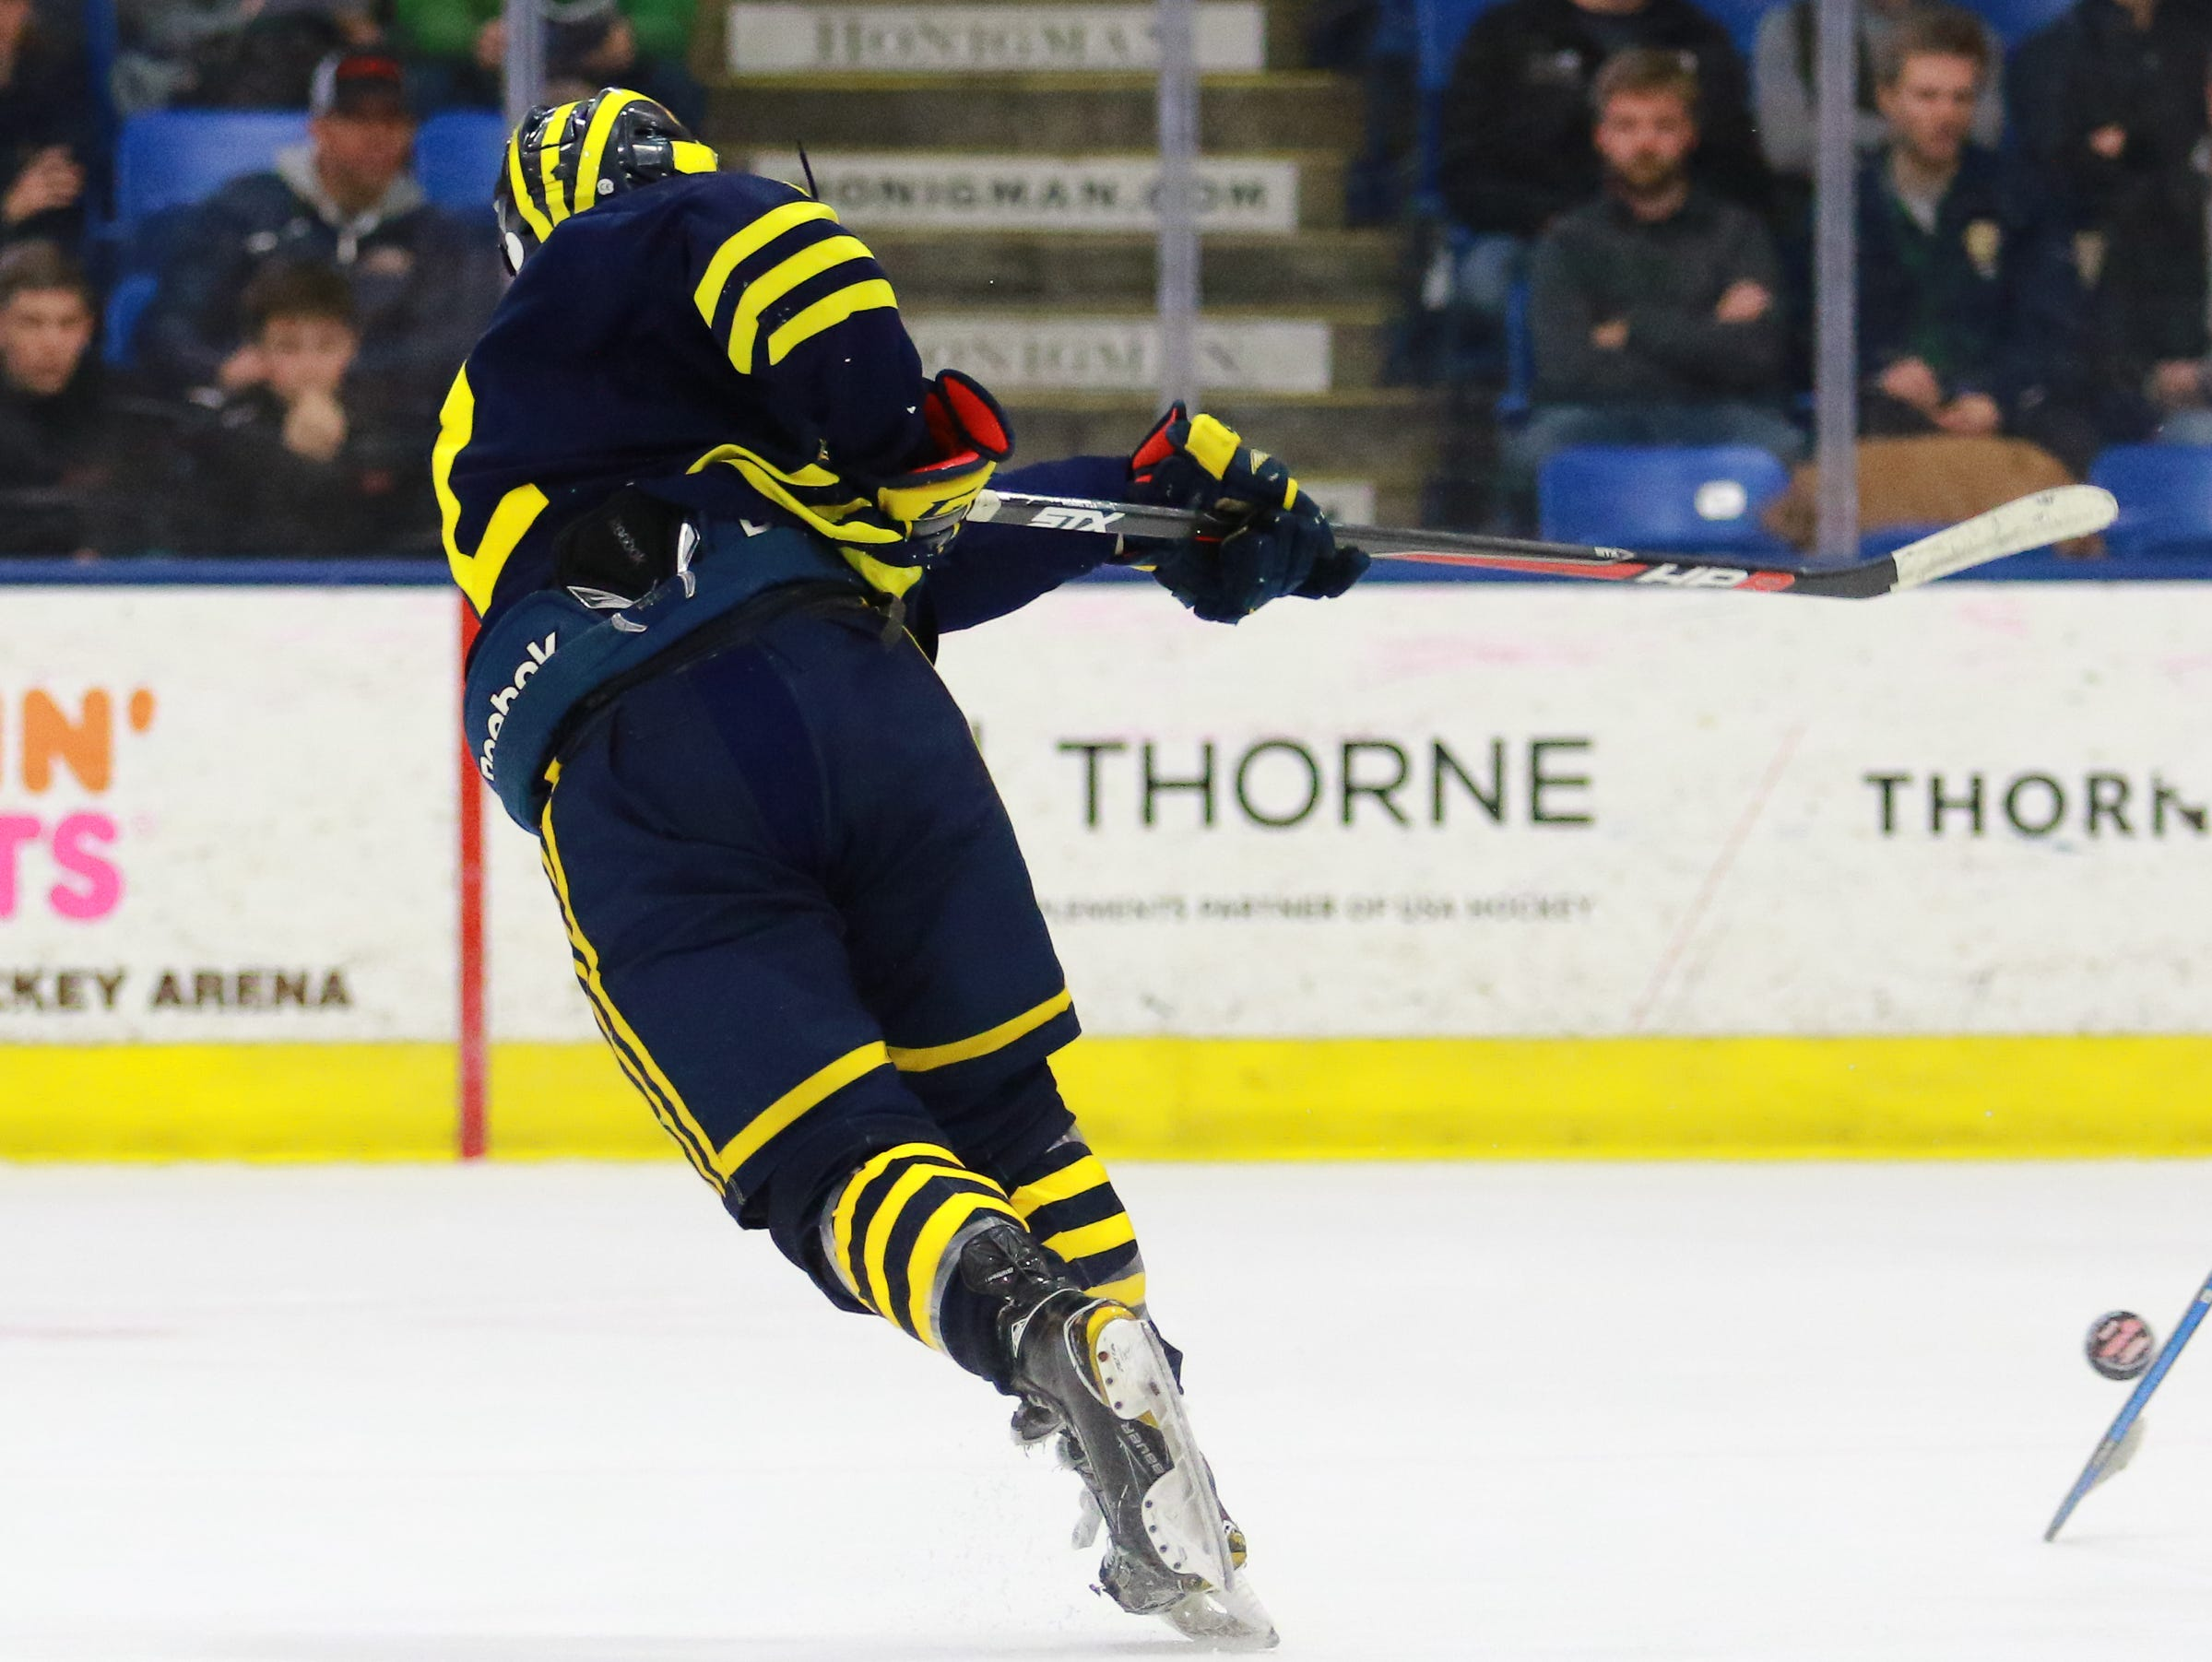 Hartland's Kieran Carlile lets a shot fly in a 4-0 victory over Trenton in the state Division 2 championship hockey game on Saturday, March 9, 2019 at USA Hockey Arena.